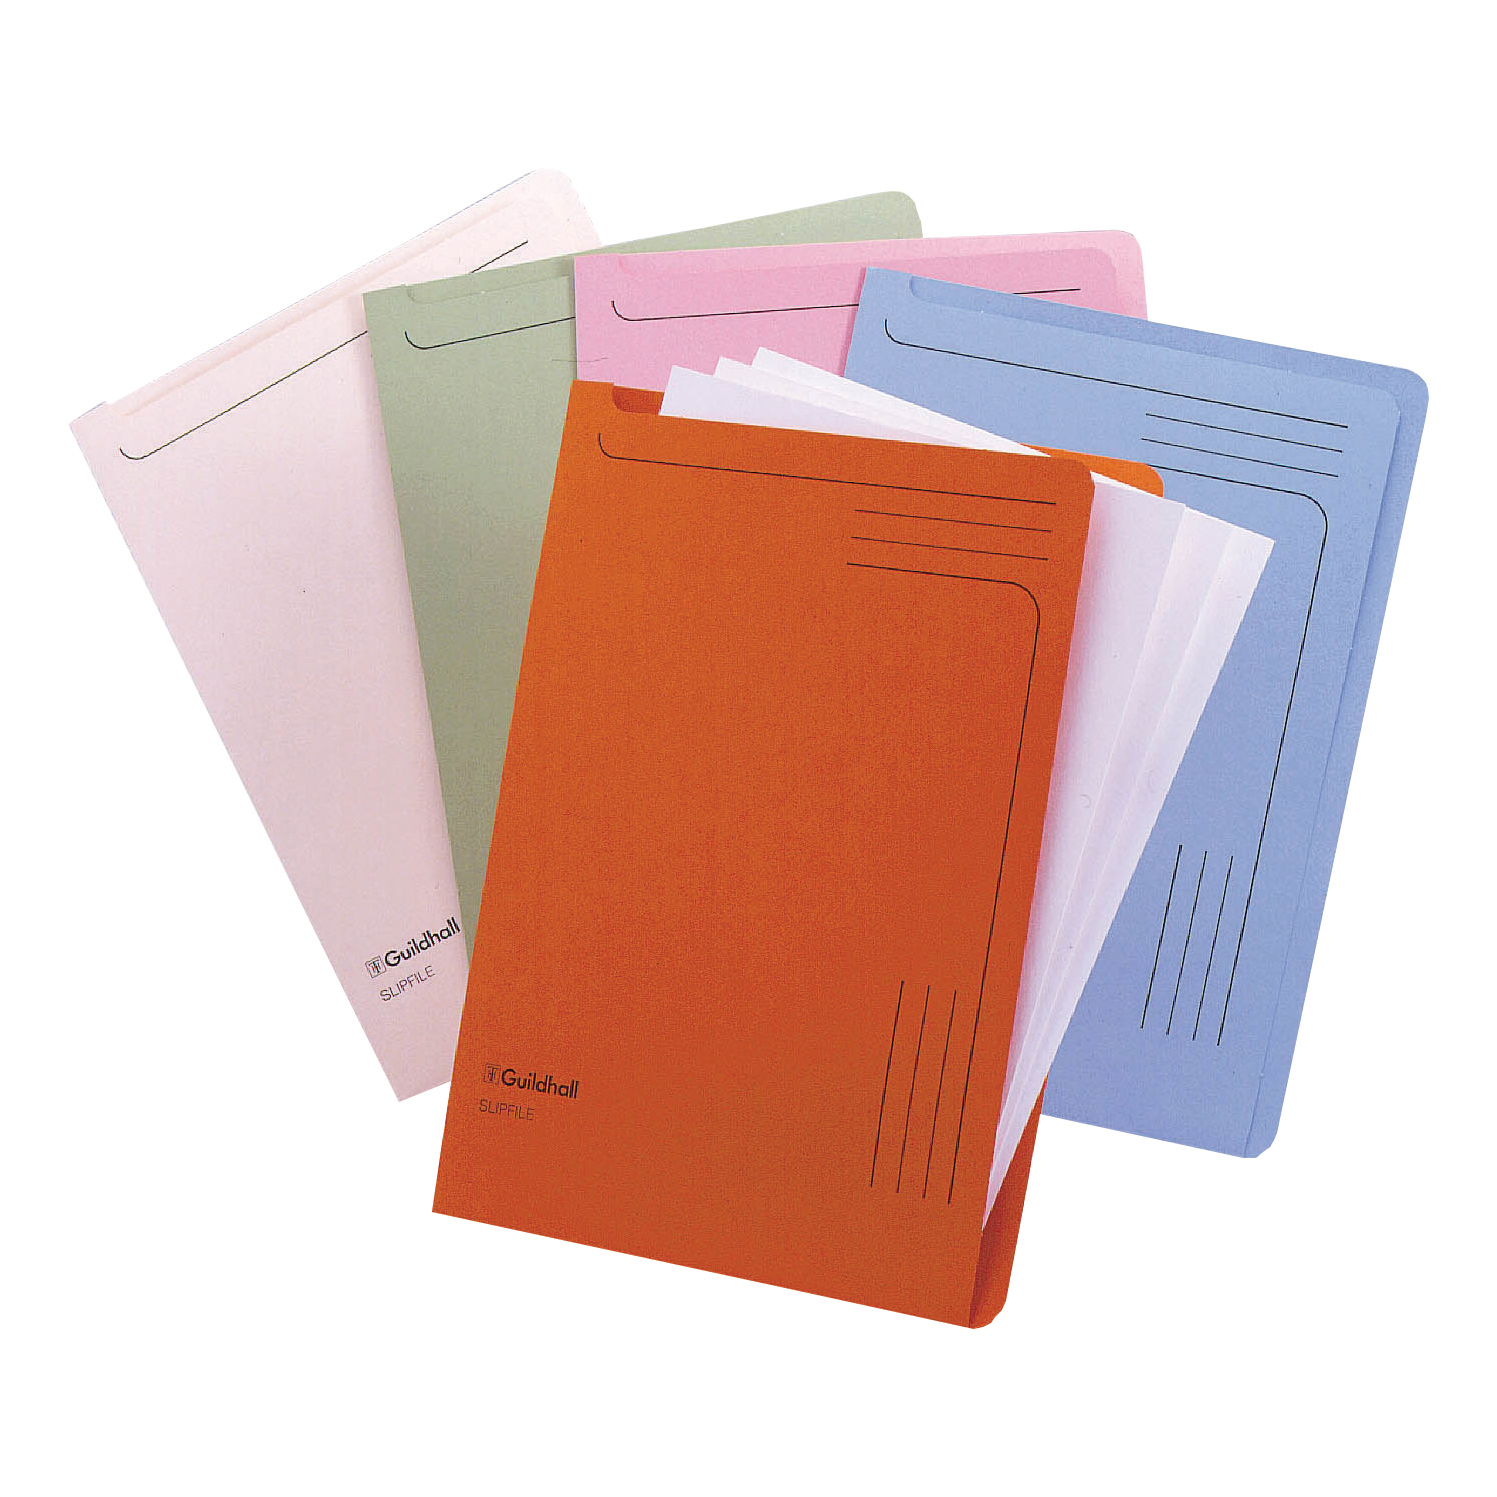 Guildhall Slipfile 230gsm Capacity 50 Sheets A4 Orange Ref 4607Z [Pack 50]